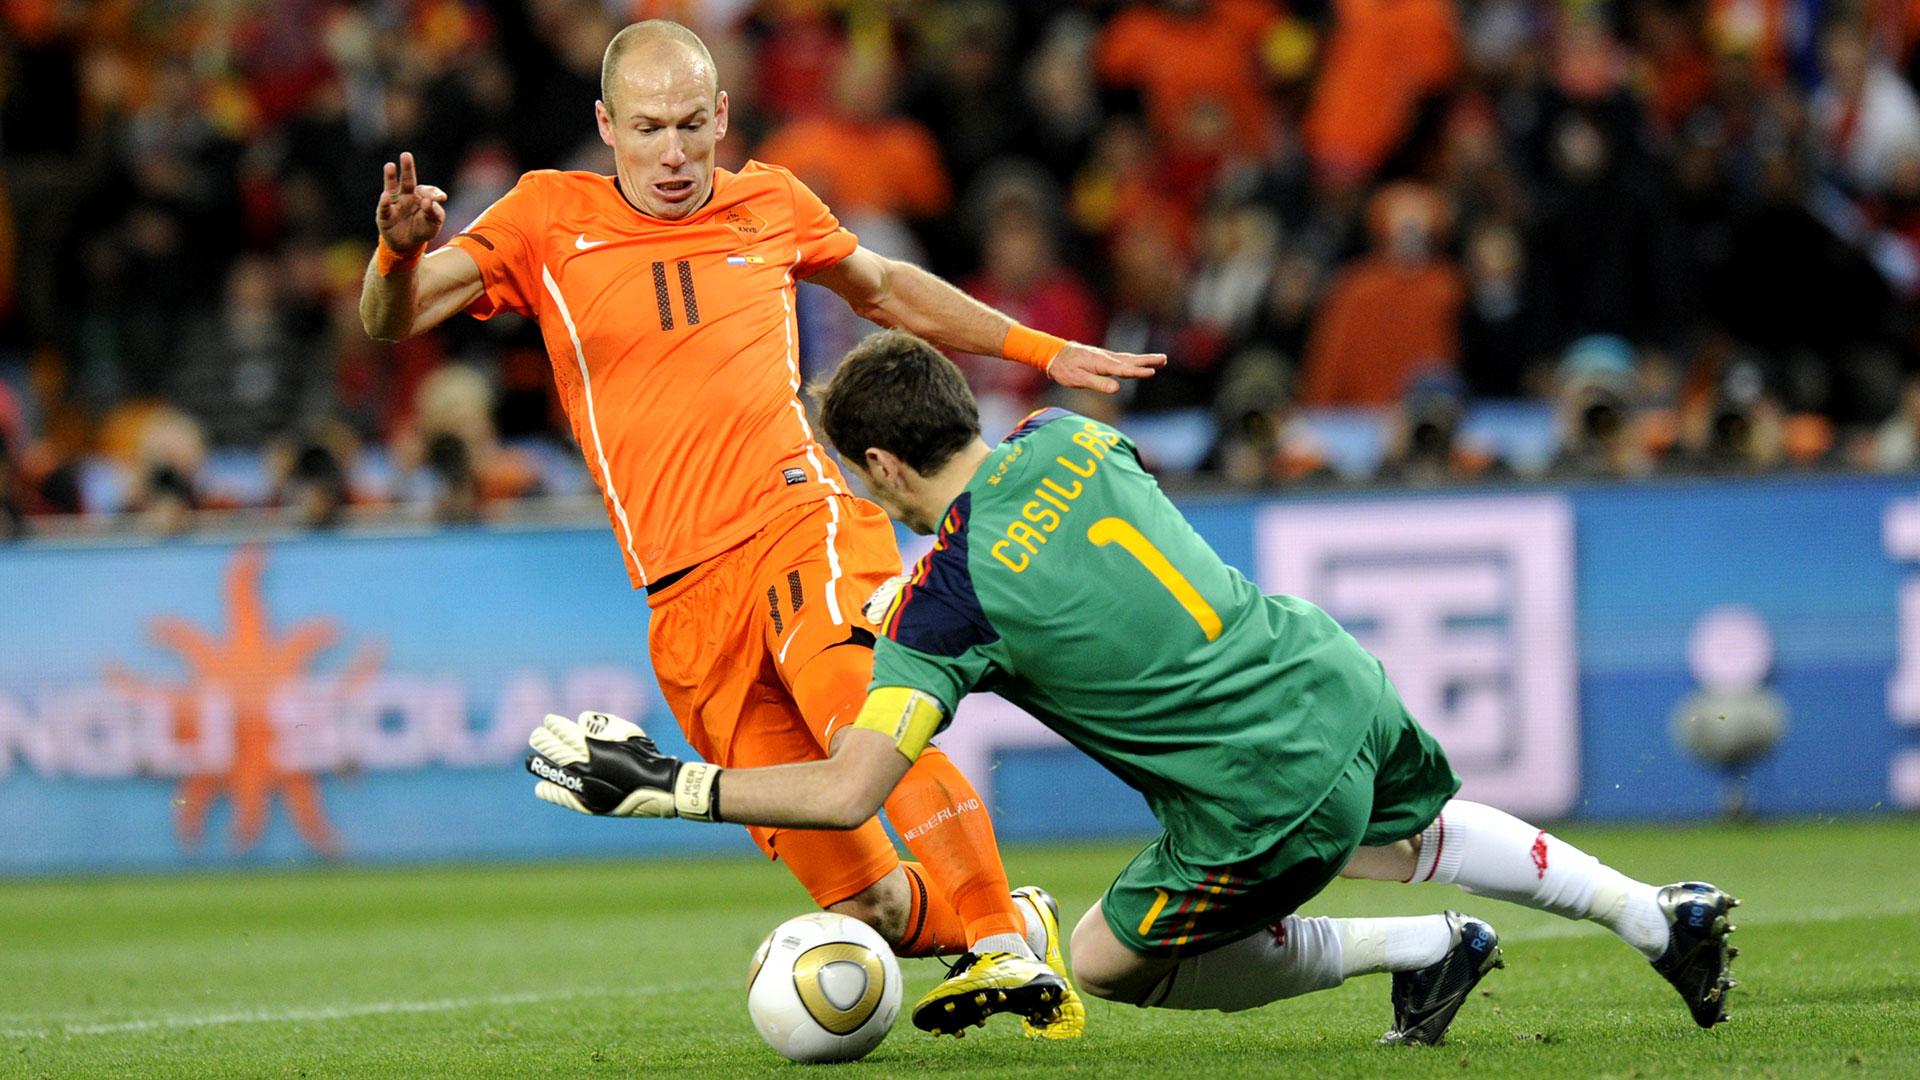 Iker Casillas Arjen Robben Spain Netherlands 2010 World Cup final